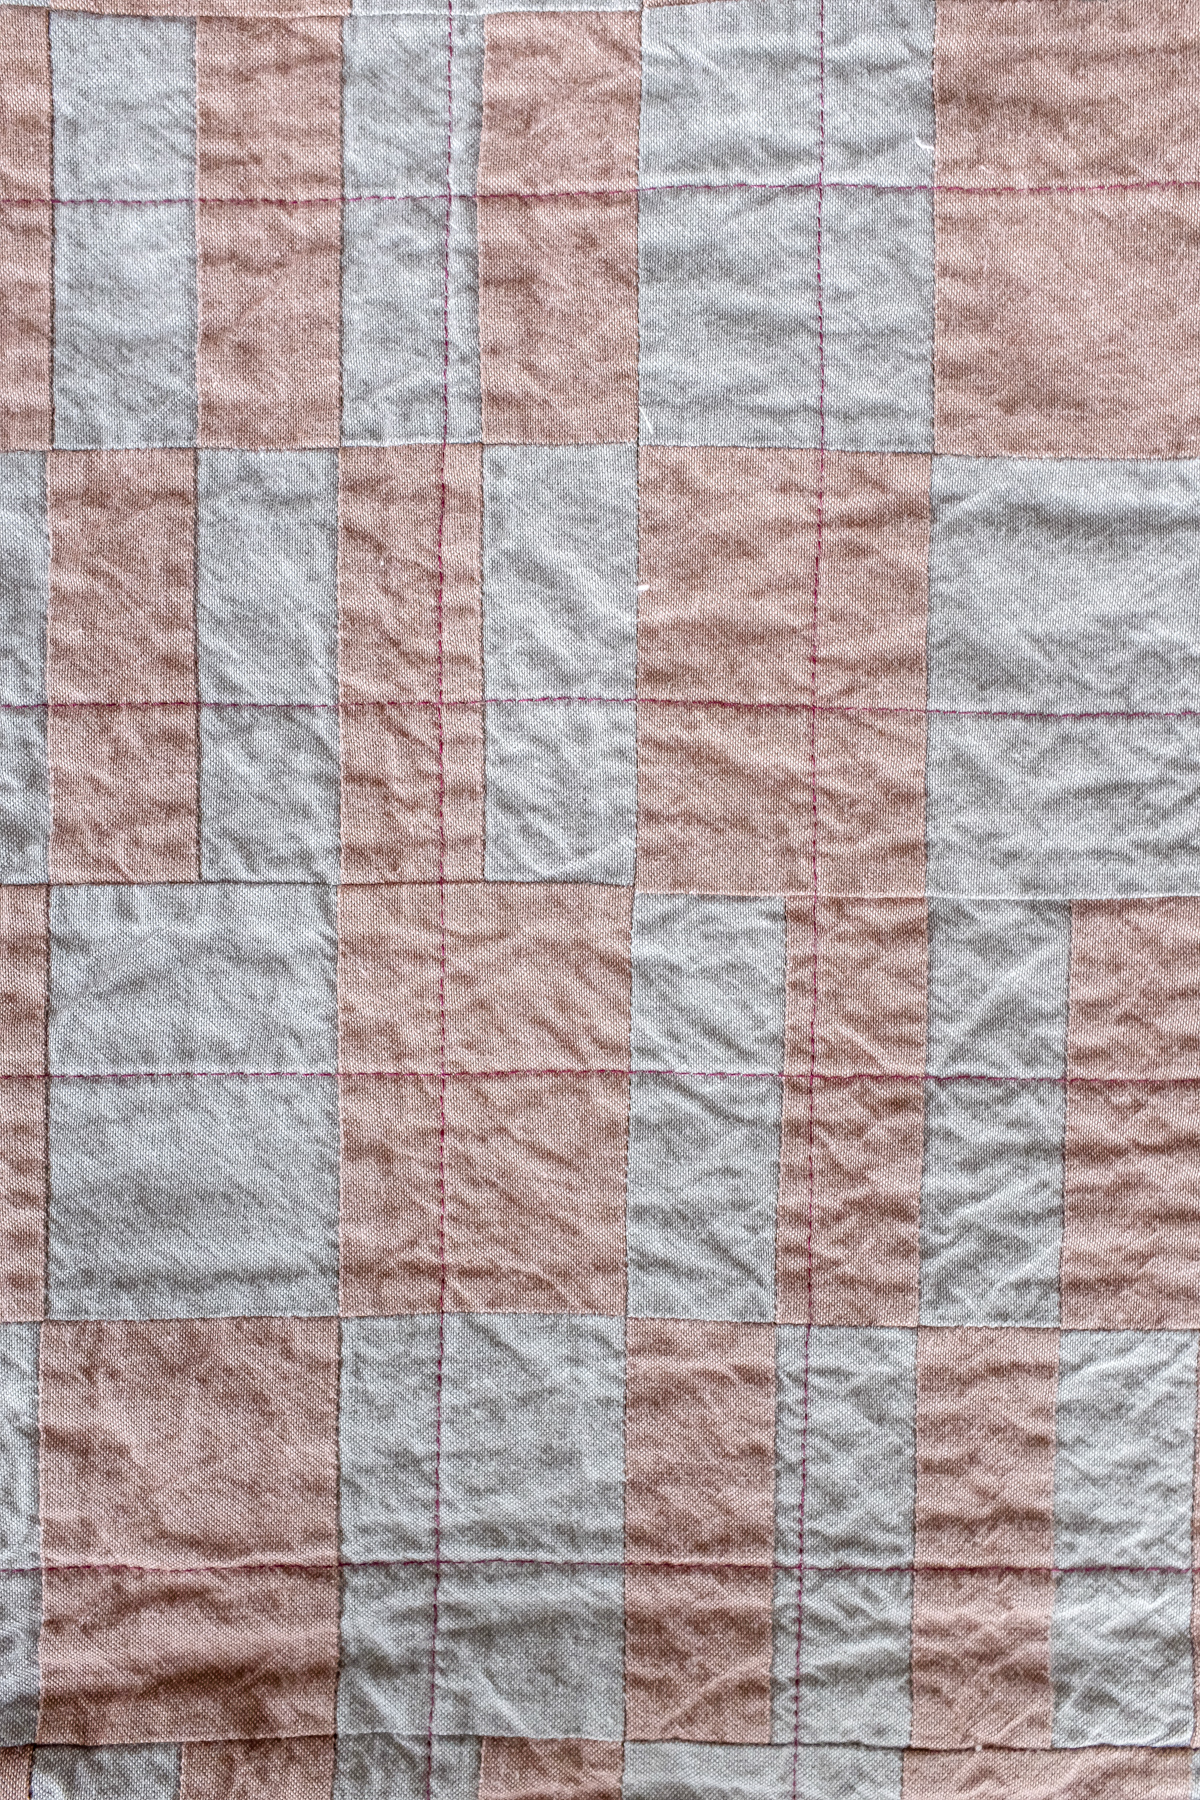 Crinkled Look after washing | Beginner Quilting Concepts with Wendy Chow The Weekend Quilter